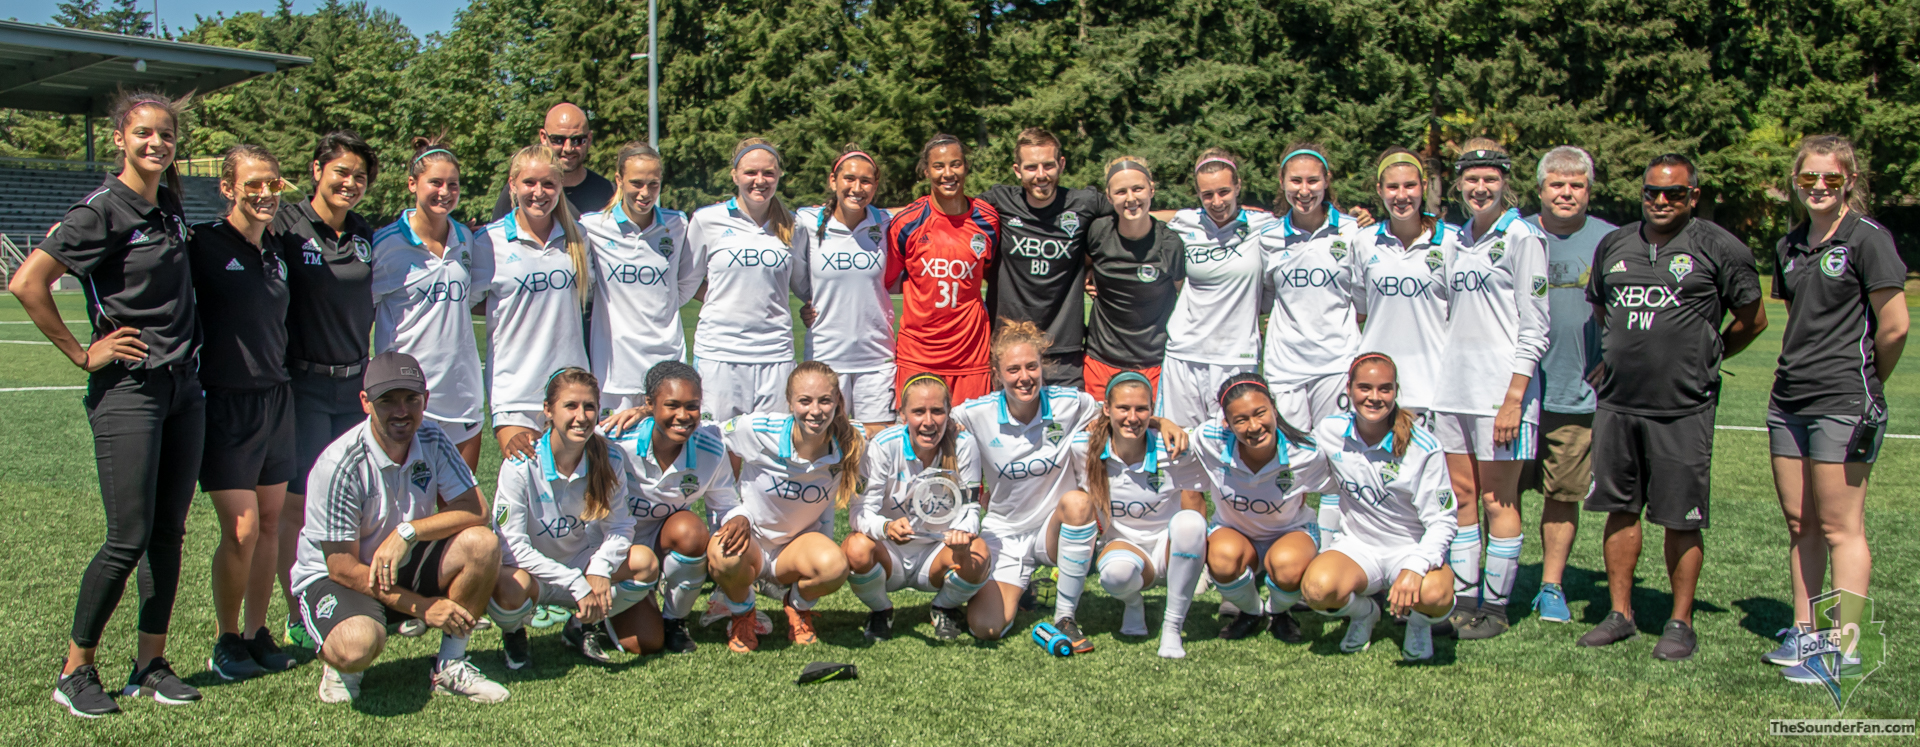 Sounders Women win WPSL Western Conference Championship, head to nationals